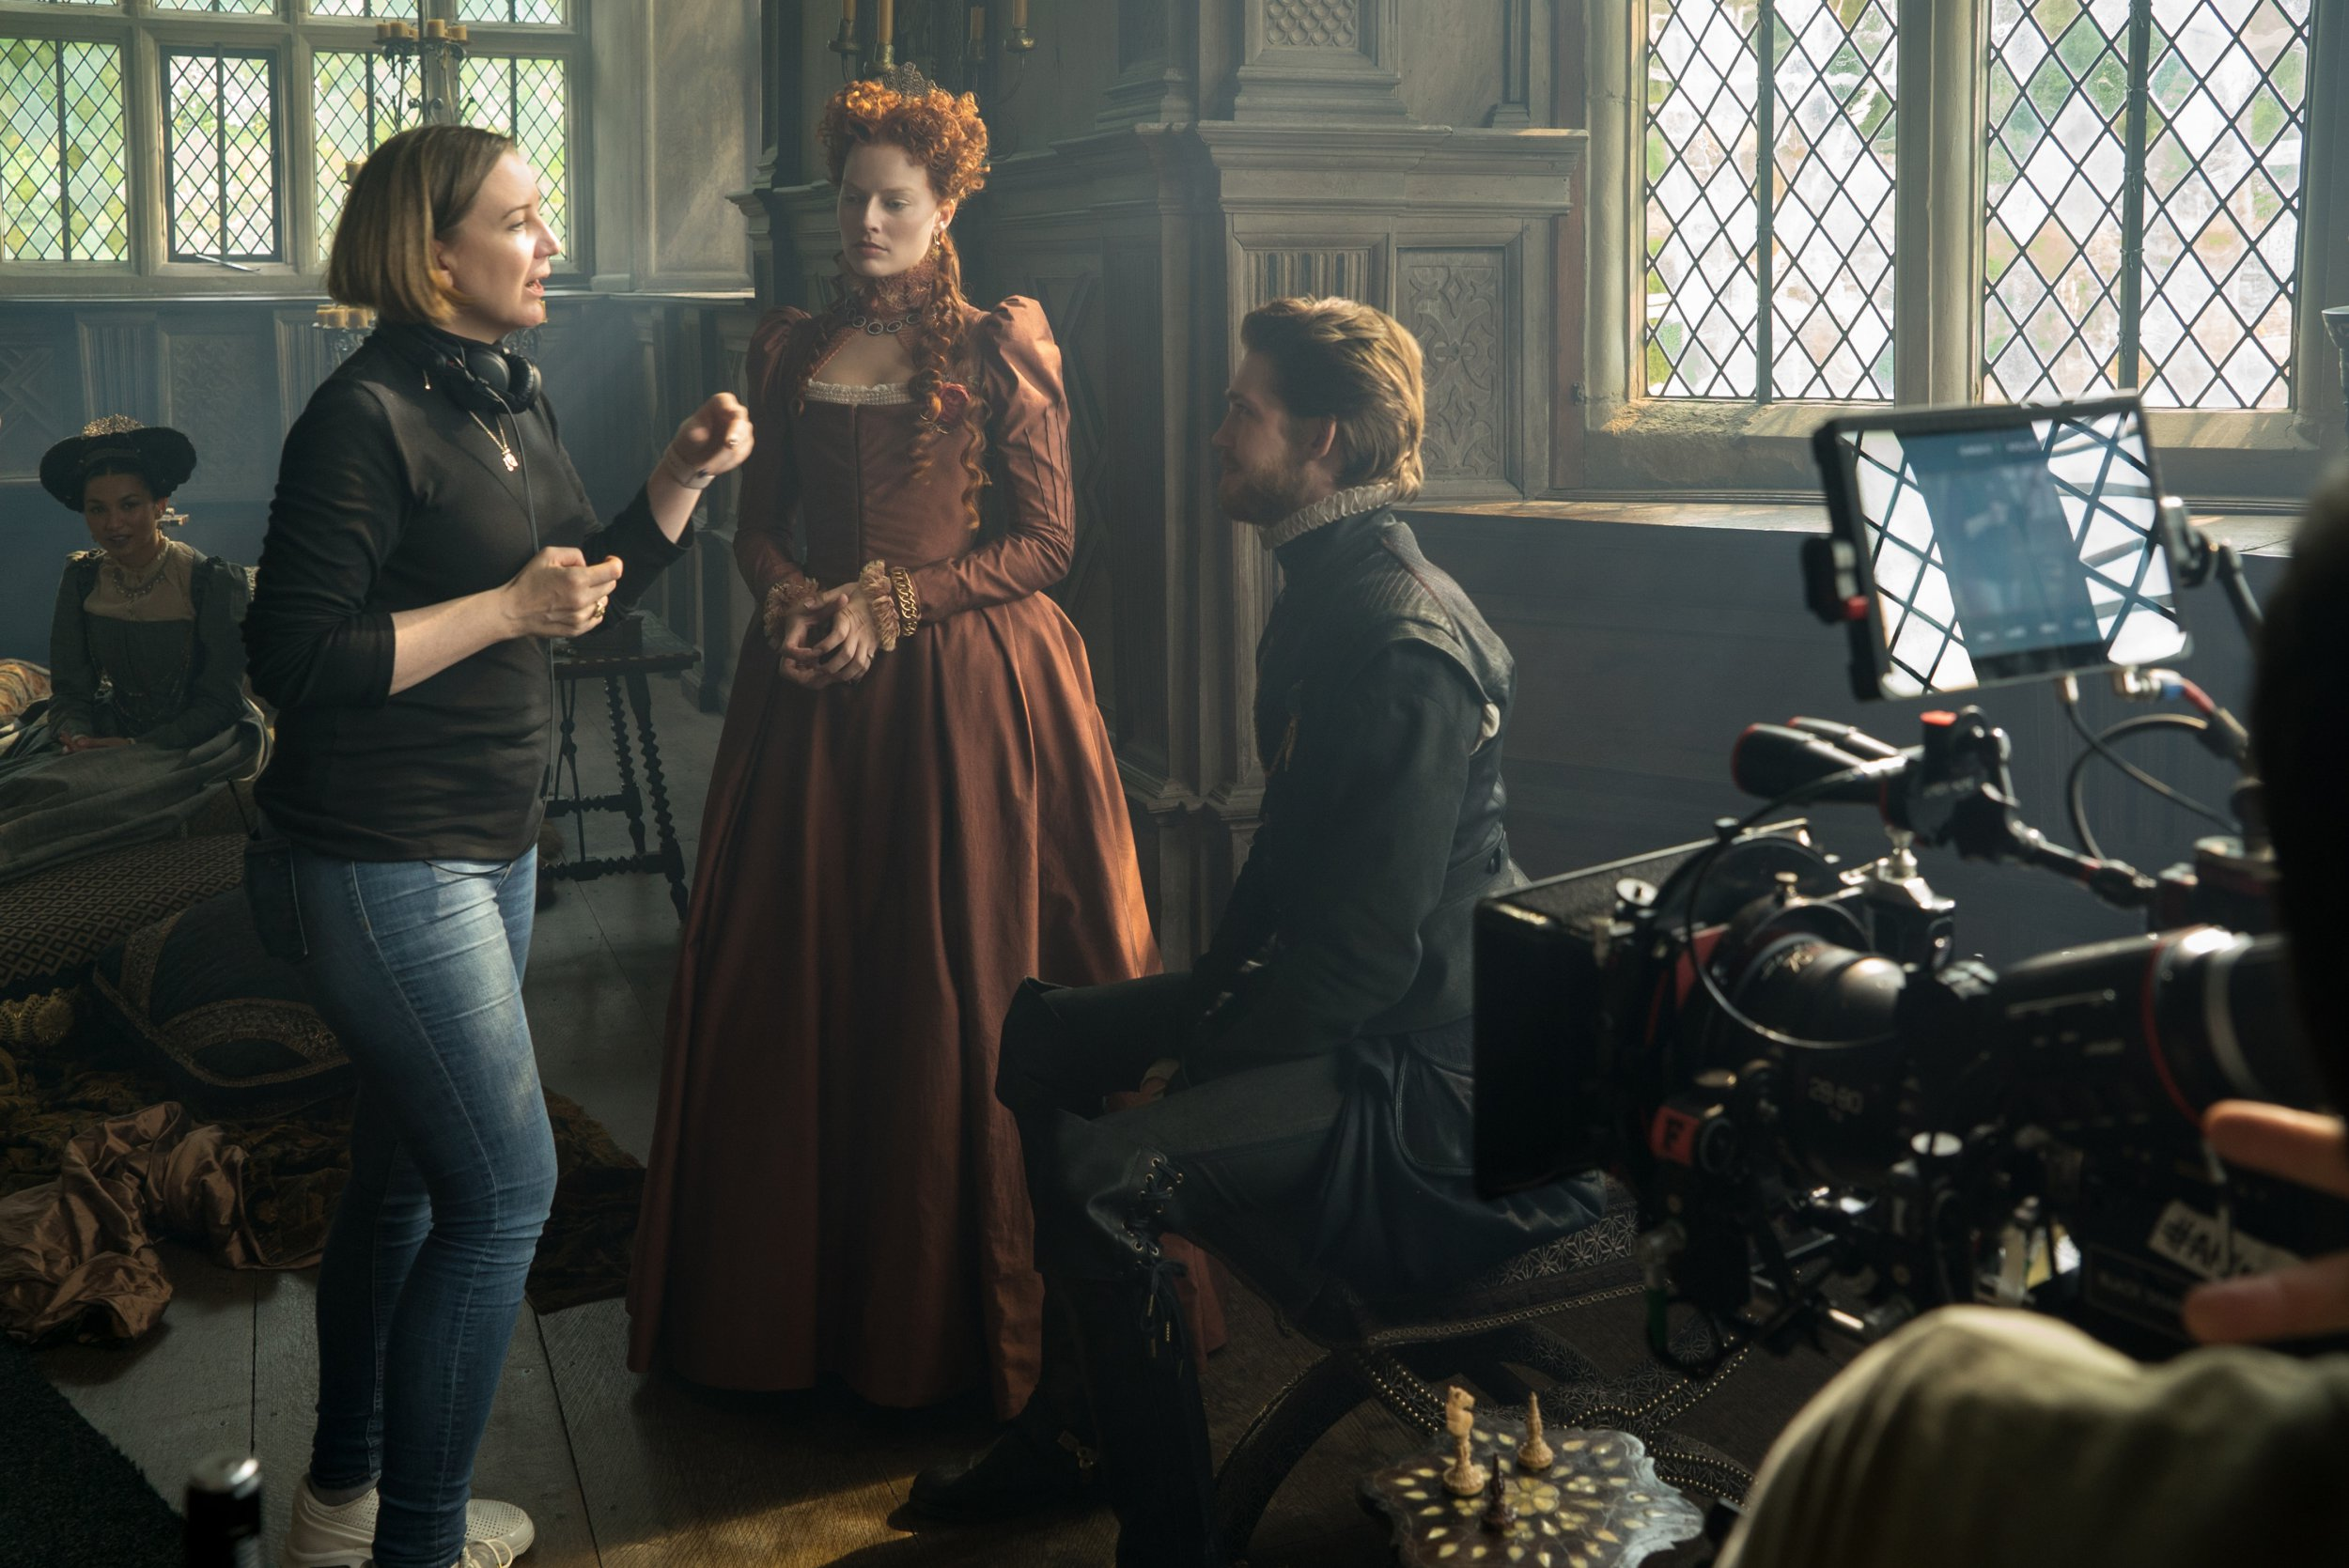 Mary Queen Of Scots director 'fought for a period in period movie' to normalise women's bodies on screen